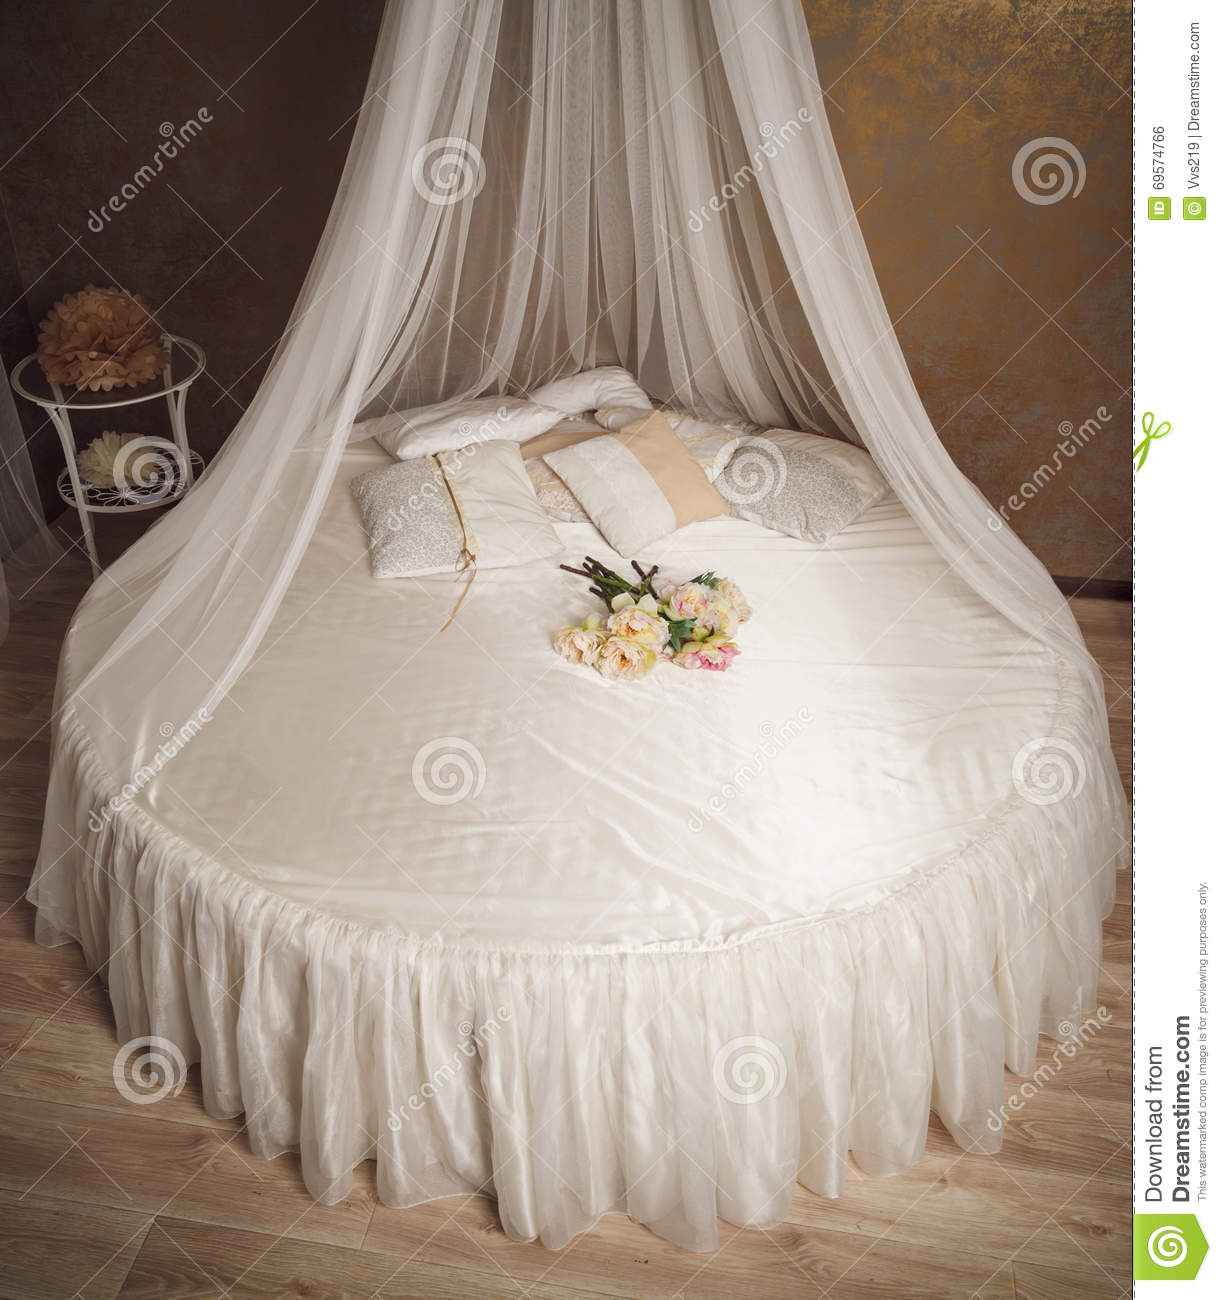 Home Interior With White Circle Bed With Canopy Stock Photo ...